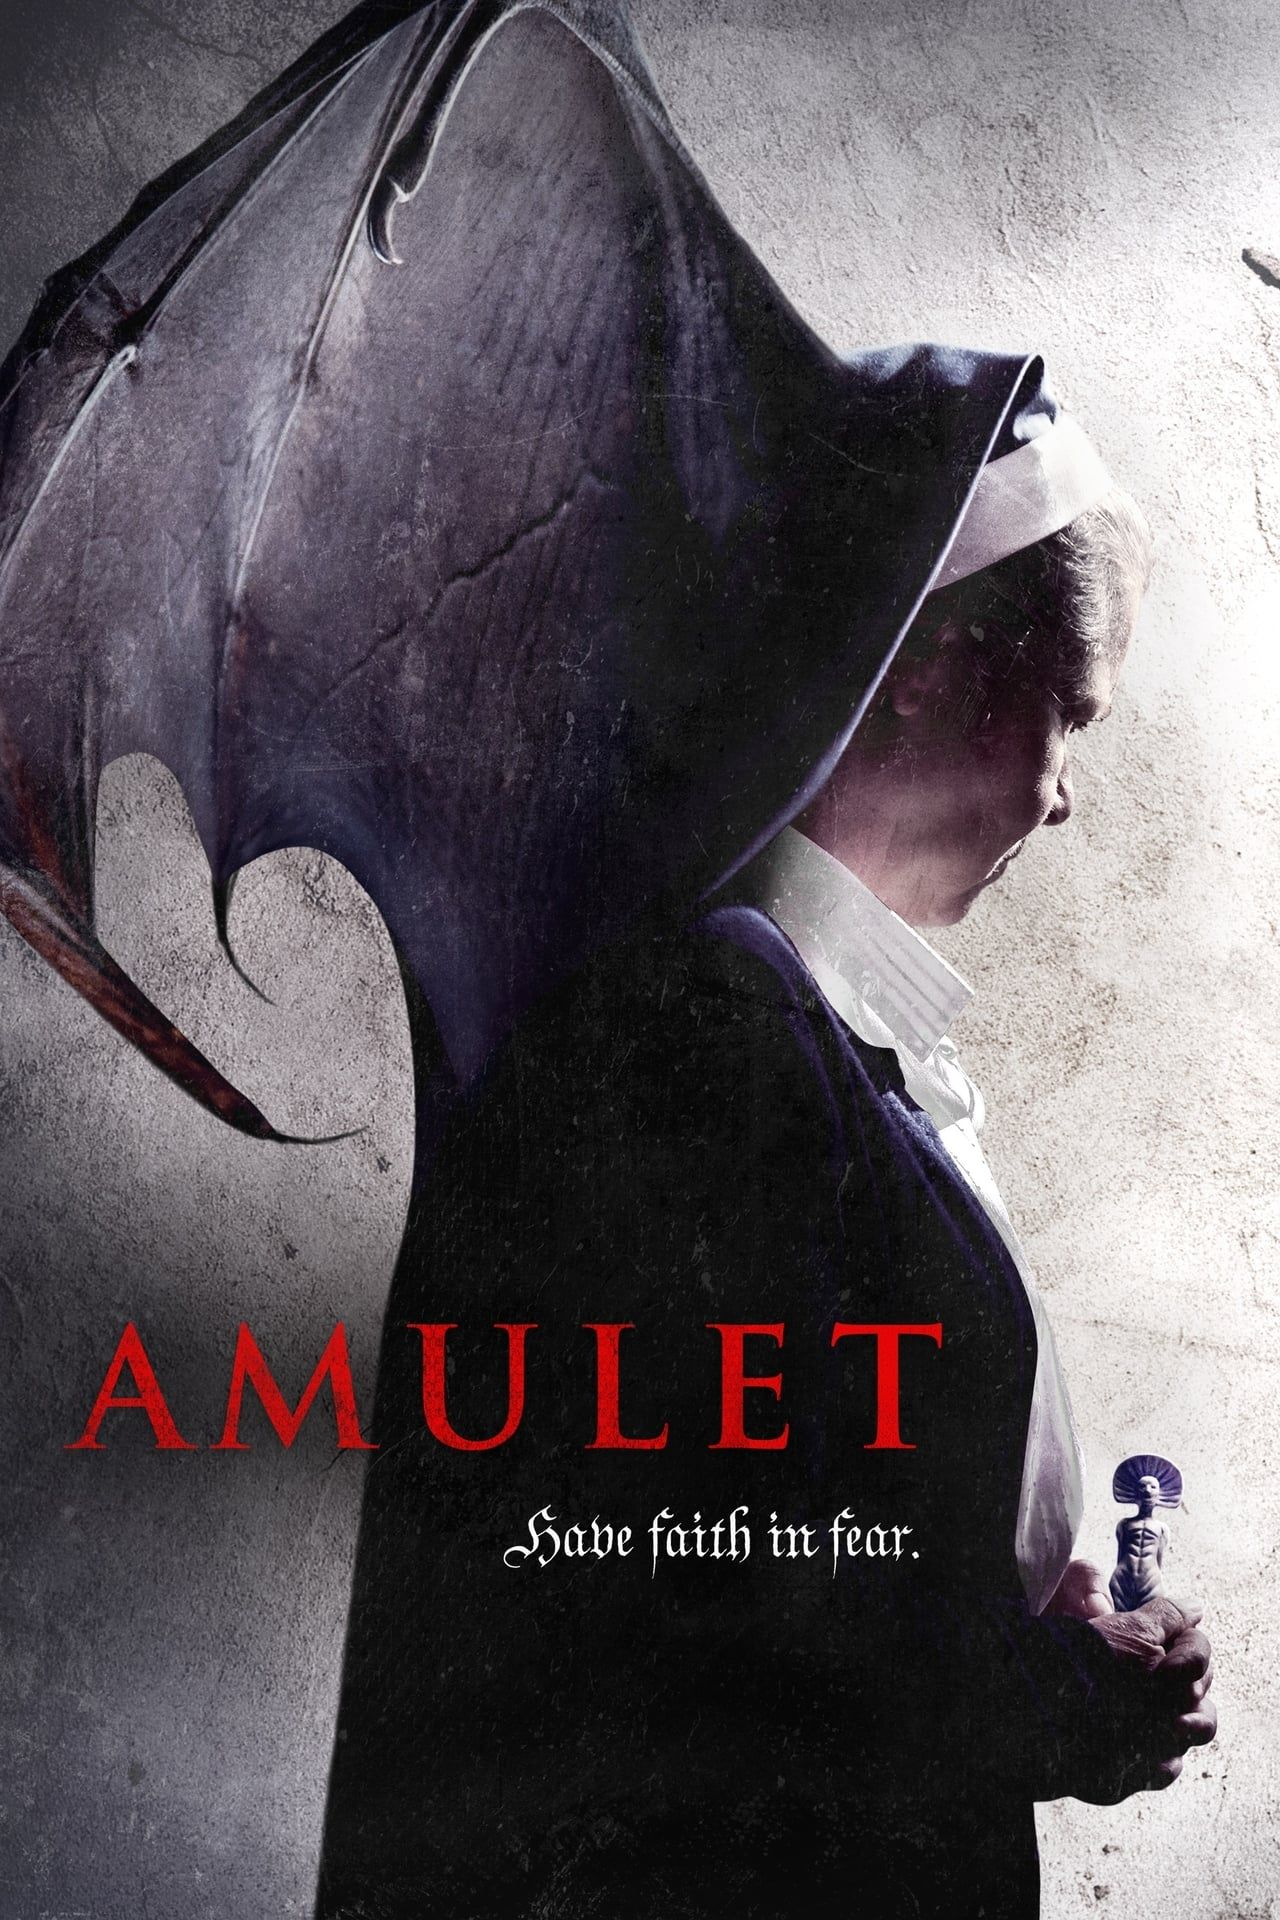 Full Free Watch Amulet 2020 Movies At Pinterest Megaflixmovies Com Newest Horror Movies Free Movies Online Full Movies Online Free